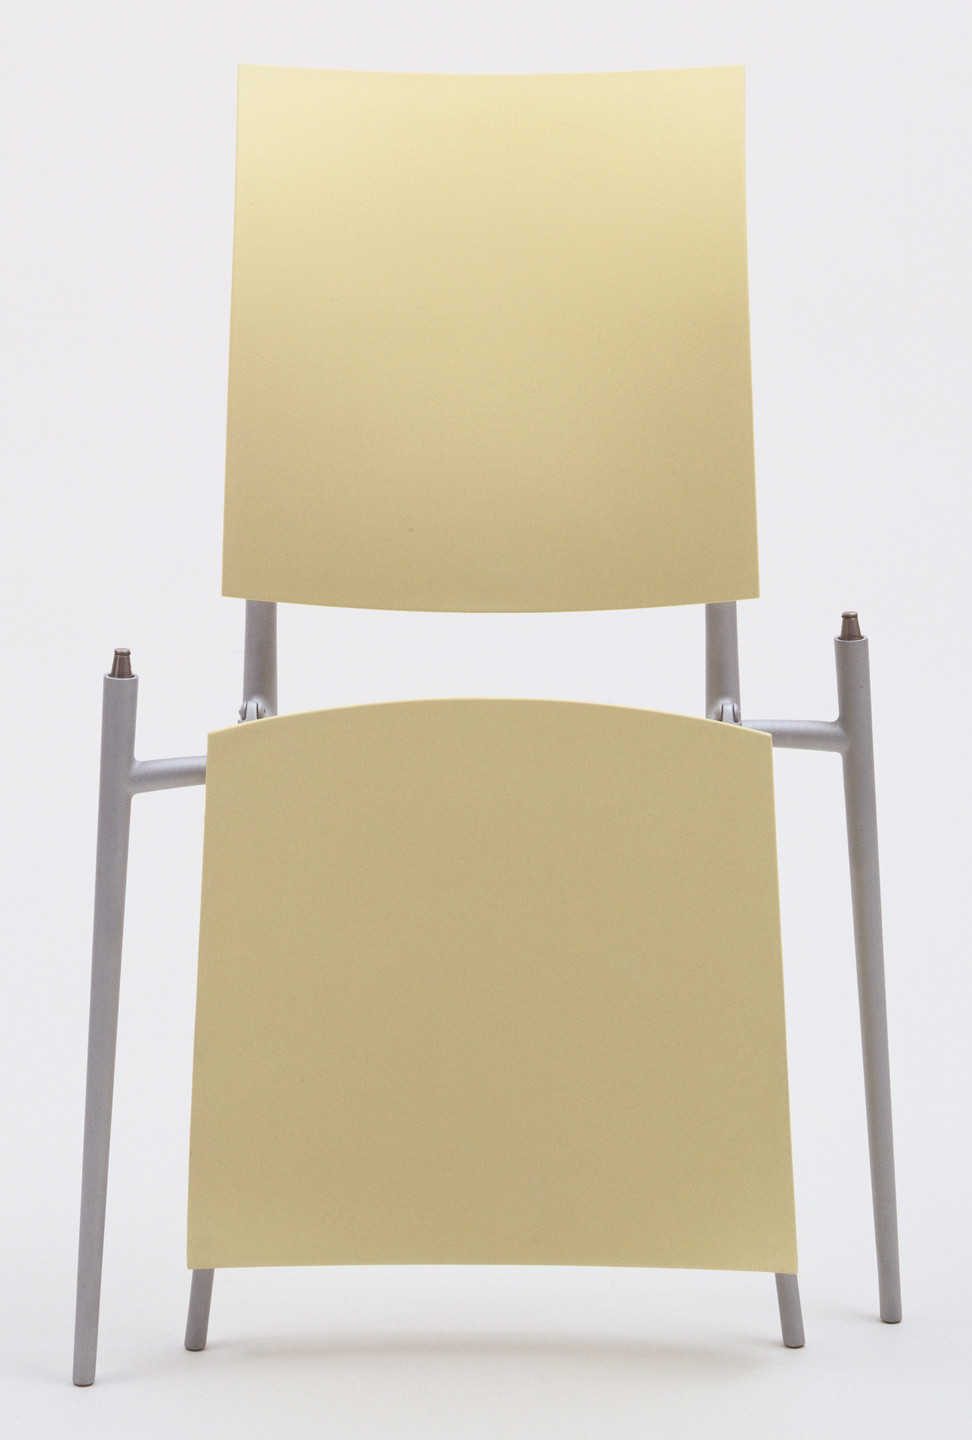 Philippe Starck. Miss C.O.C.O. Folding Chair. 1998